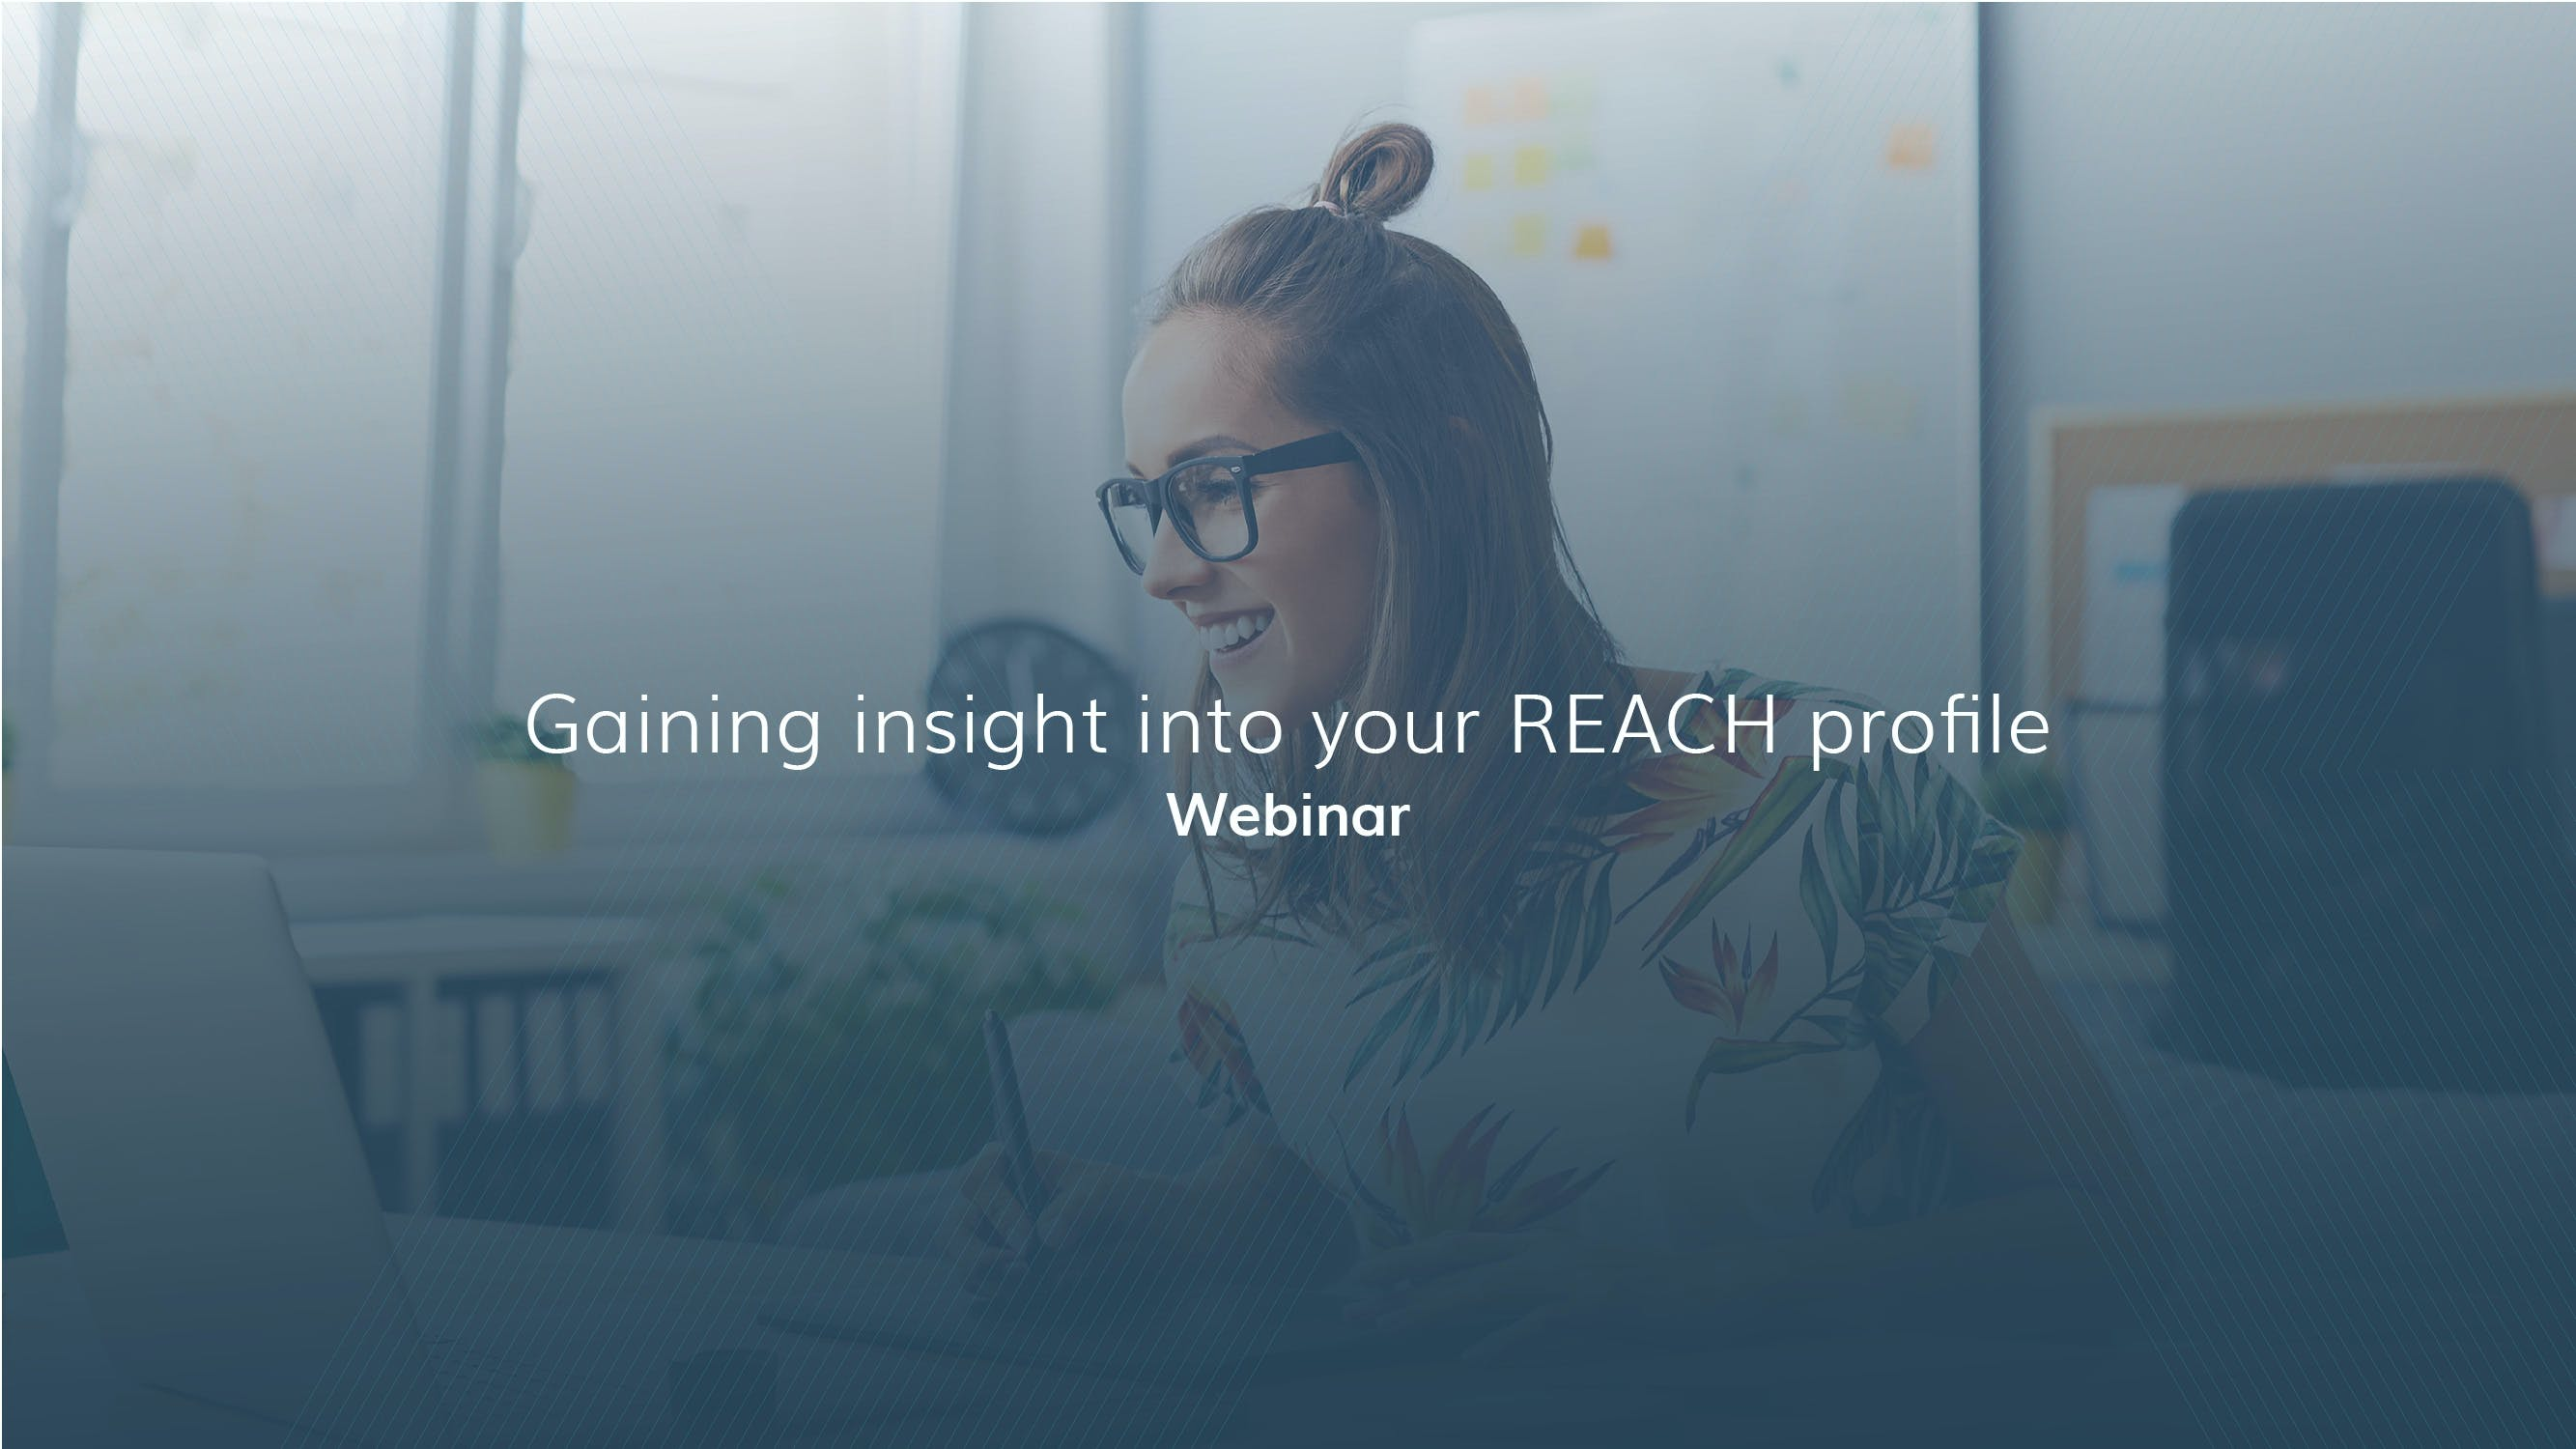 Gaining insight into your REACH profile - how do we put the 'human' back into remote work?